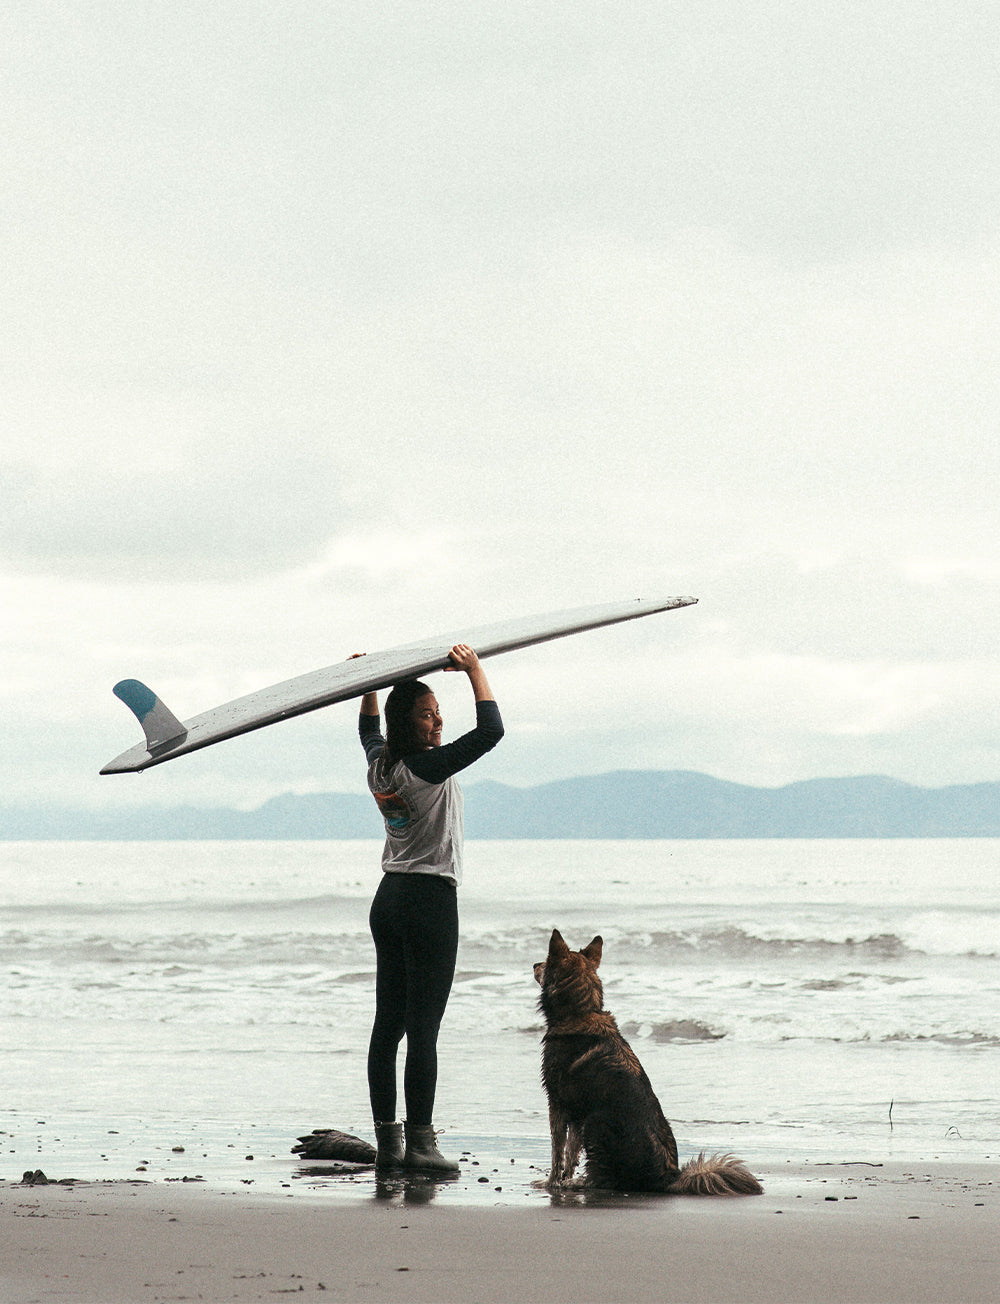 A female surfer with her dog waits for waves